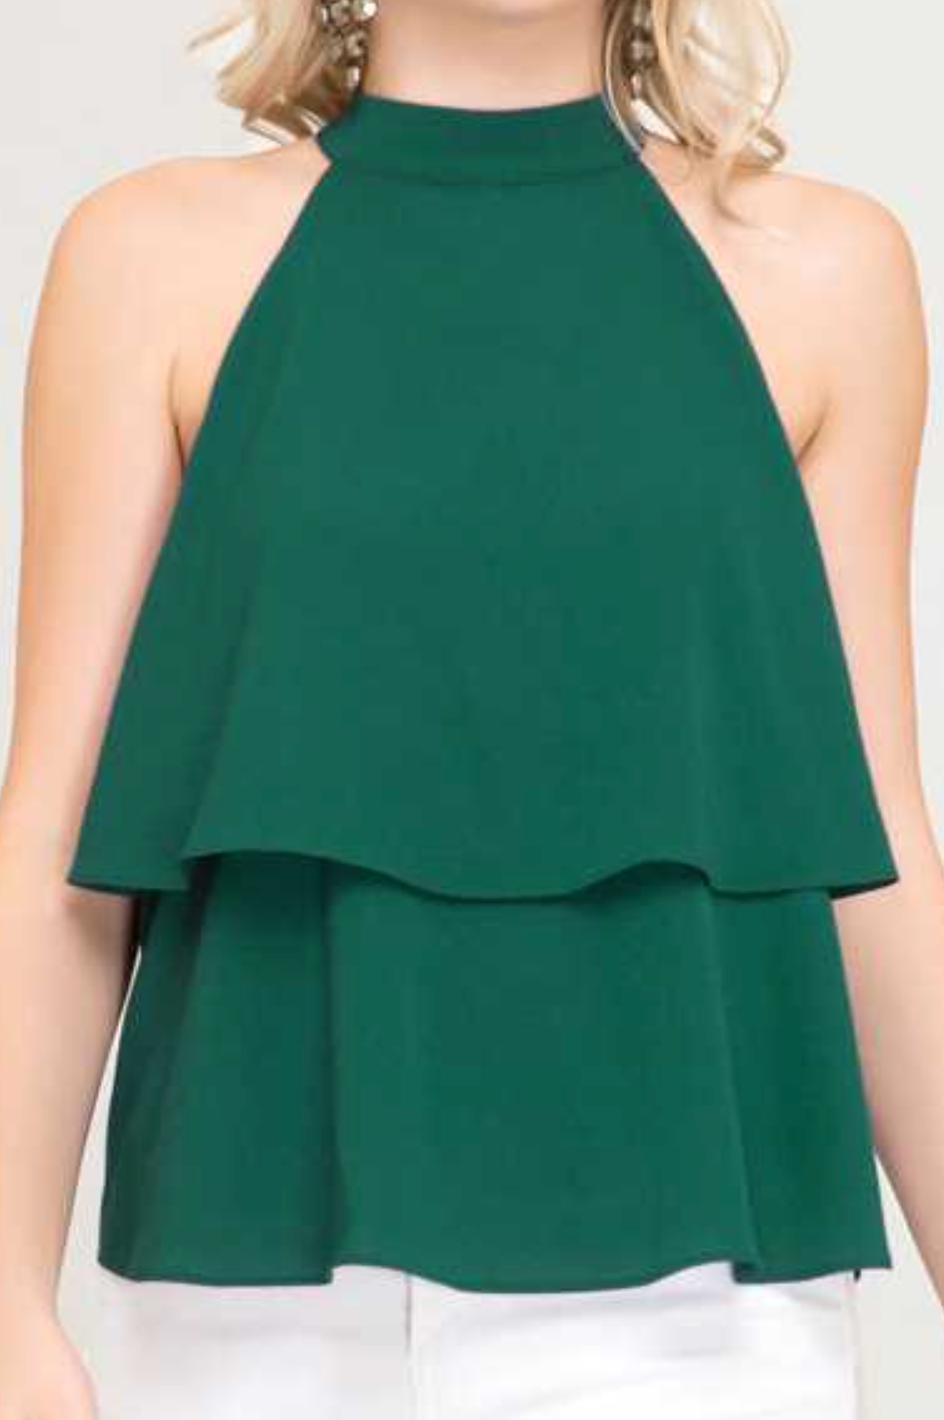 Green Holiday Top